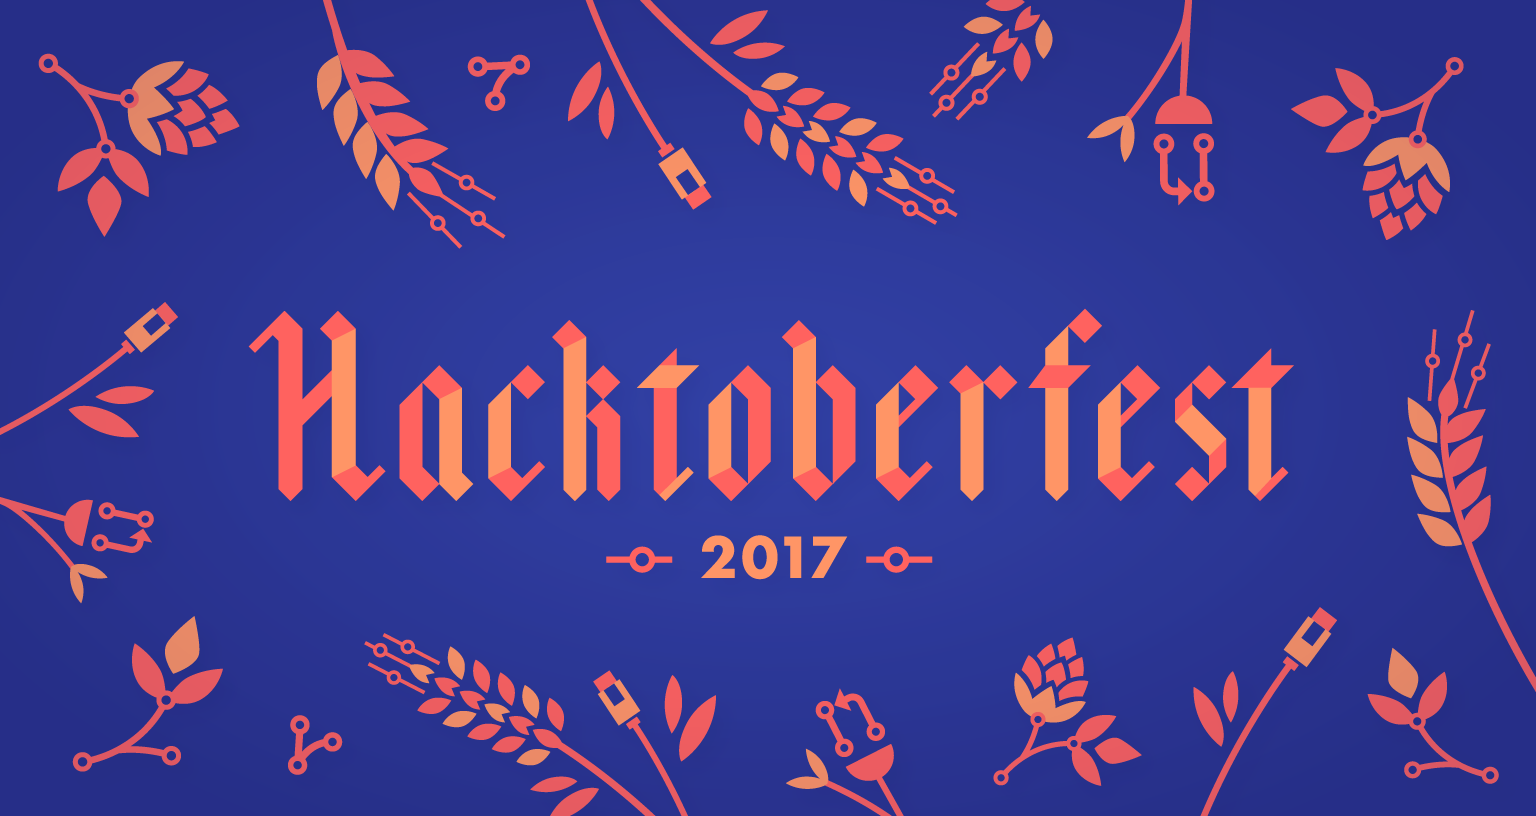 Hacktoberfest, support and encourage open source contributions.